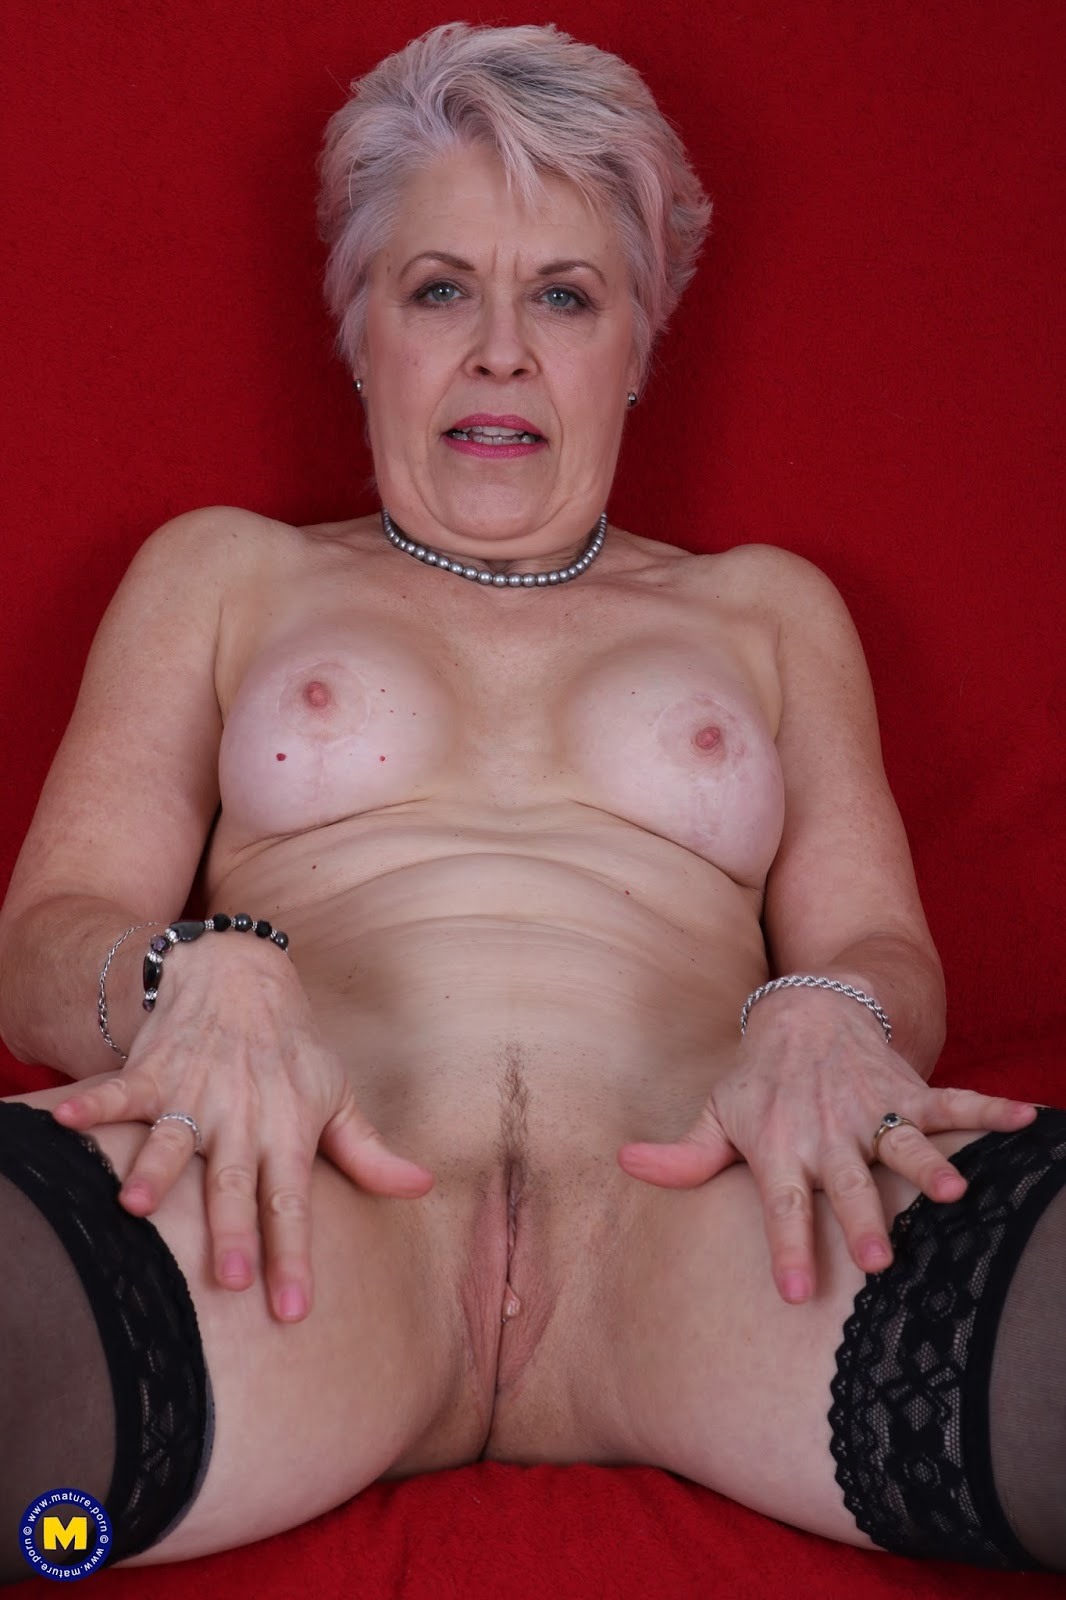 Hot Mature Lady Pics